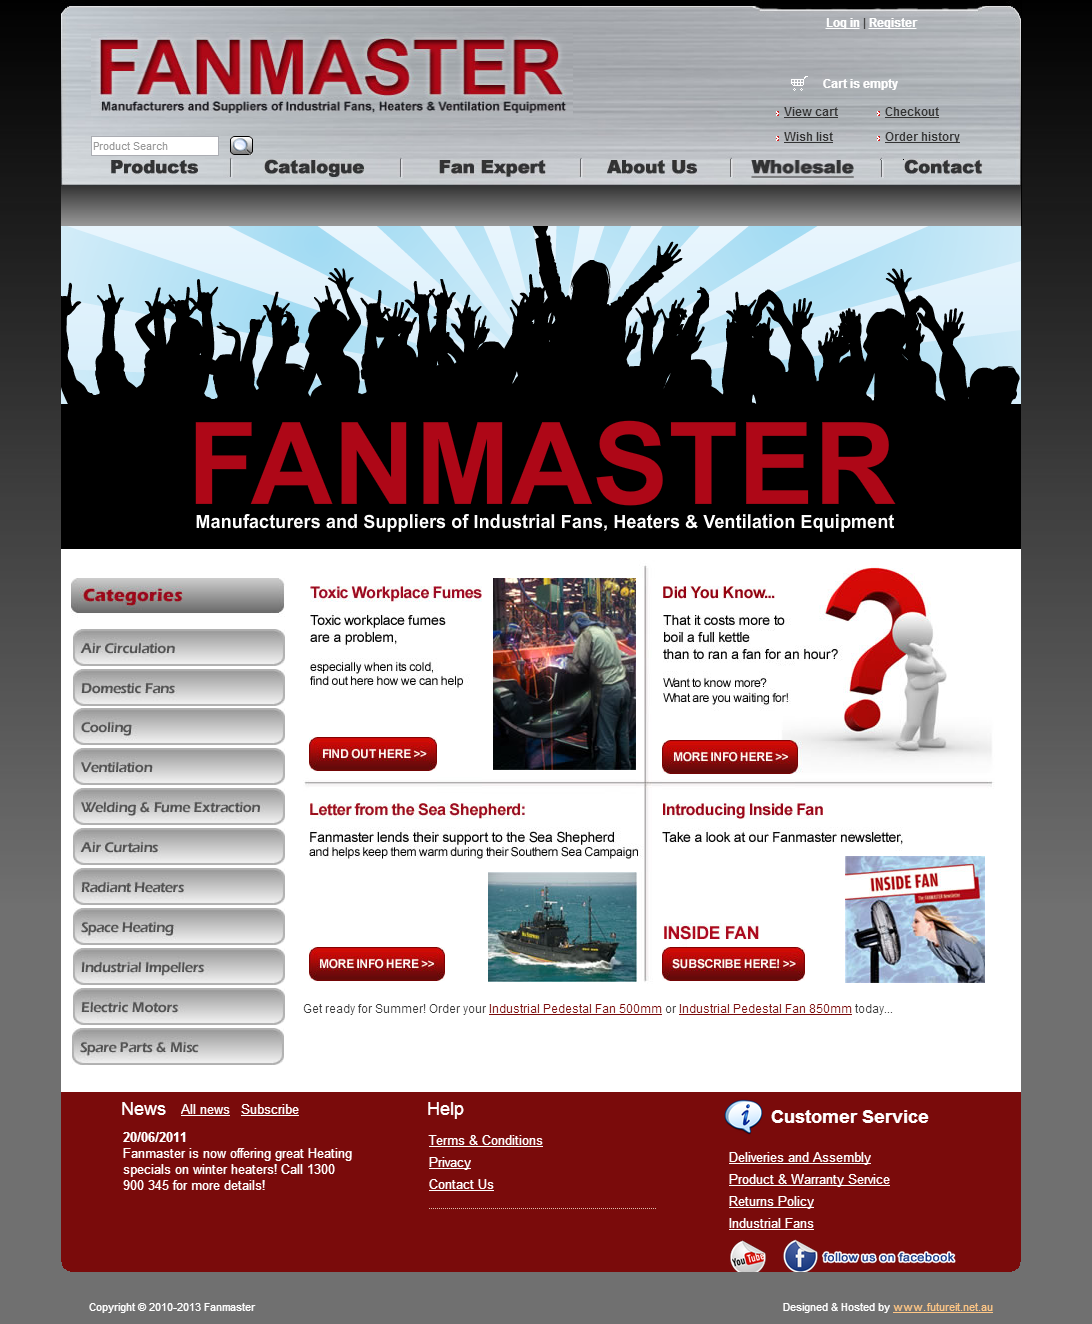 fanmaster-xcart-development